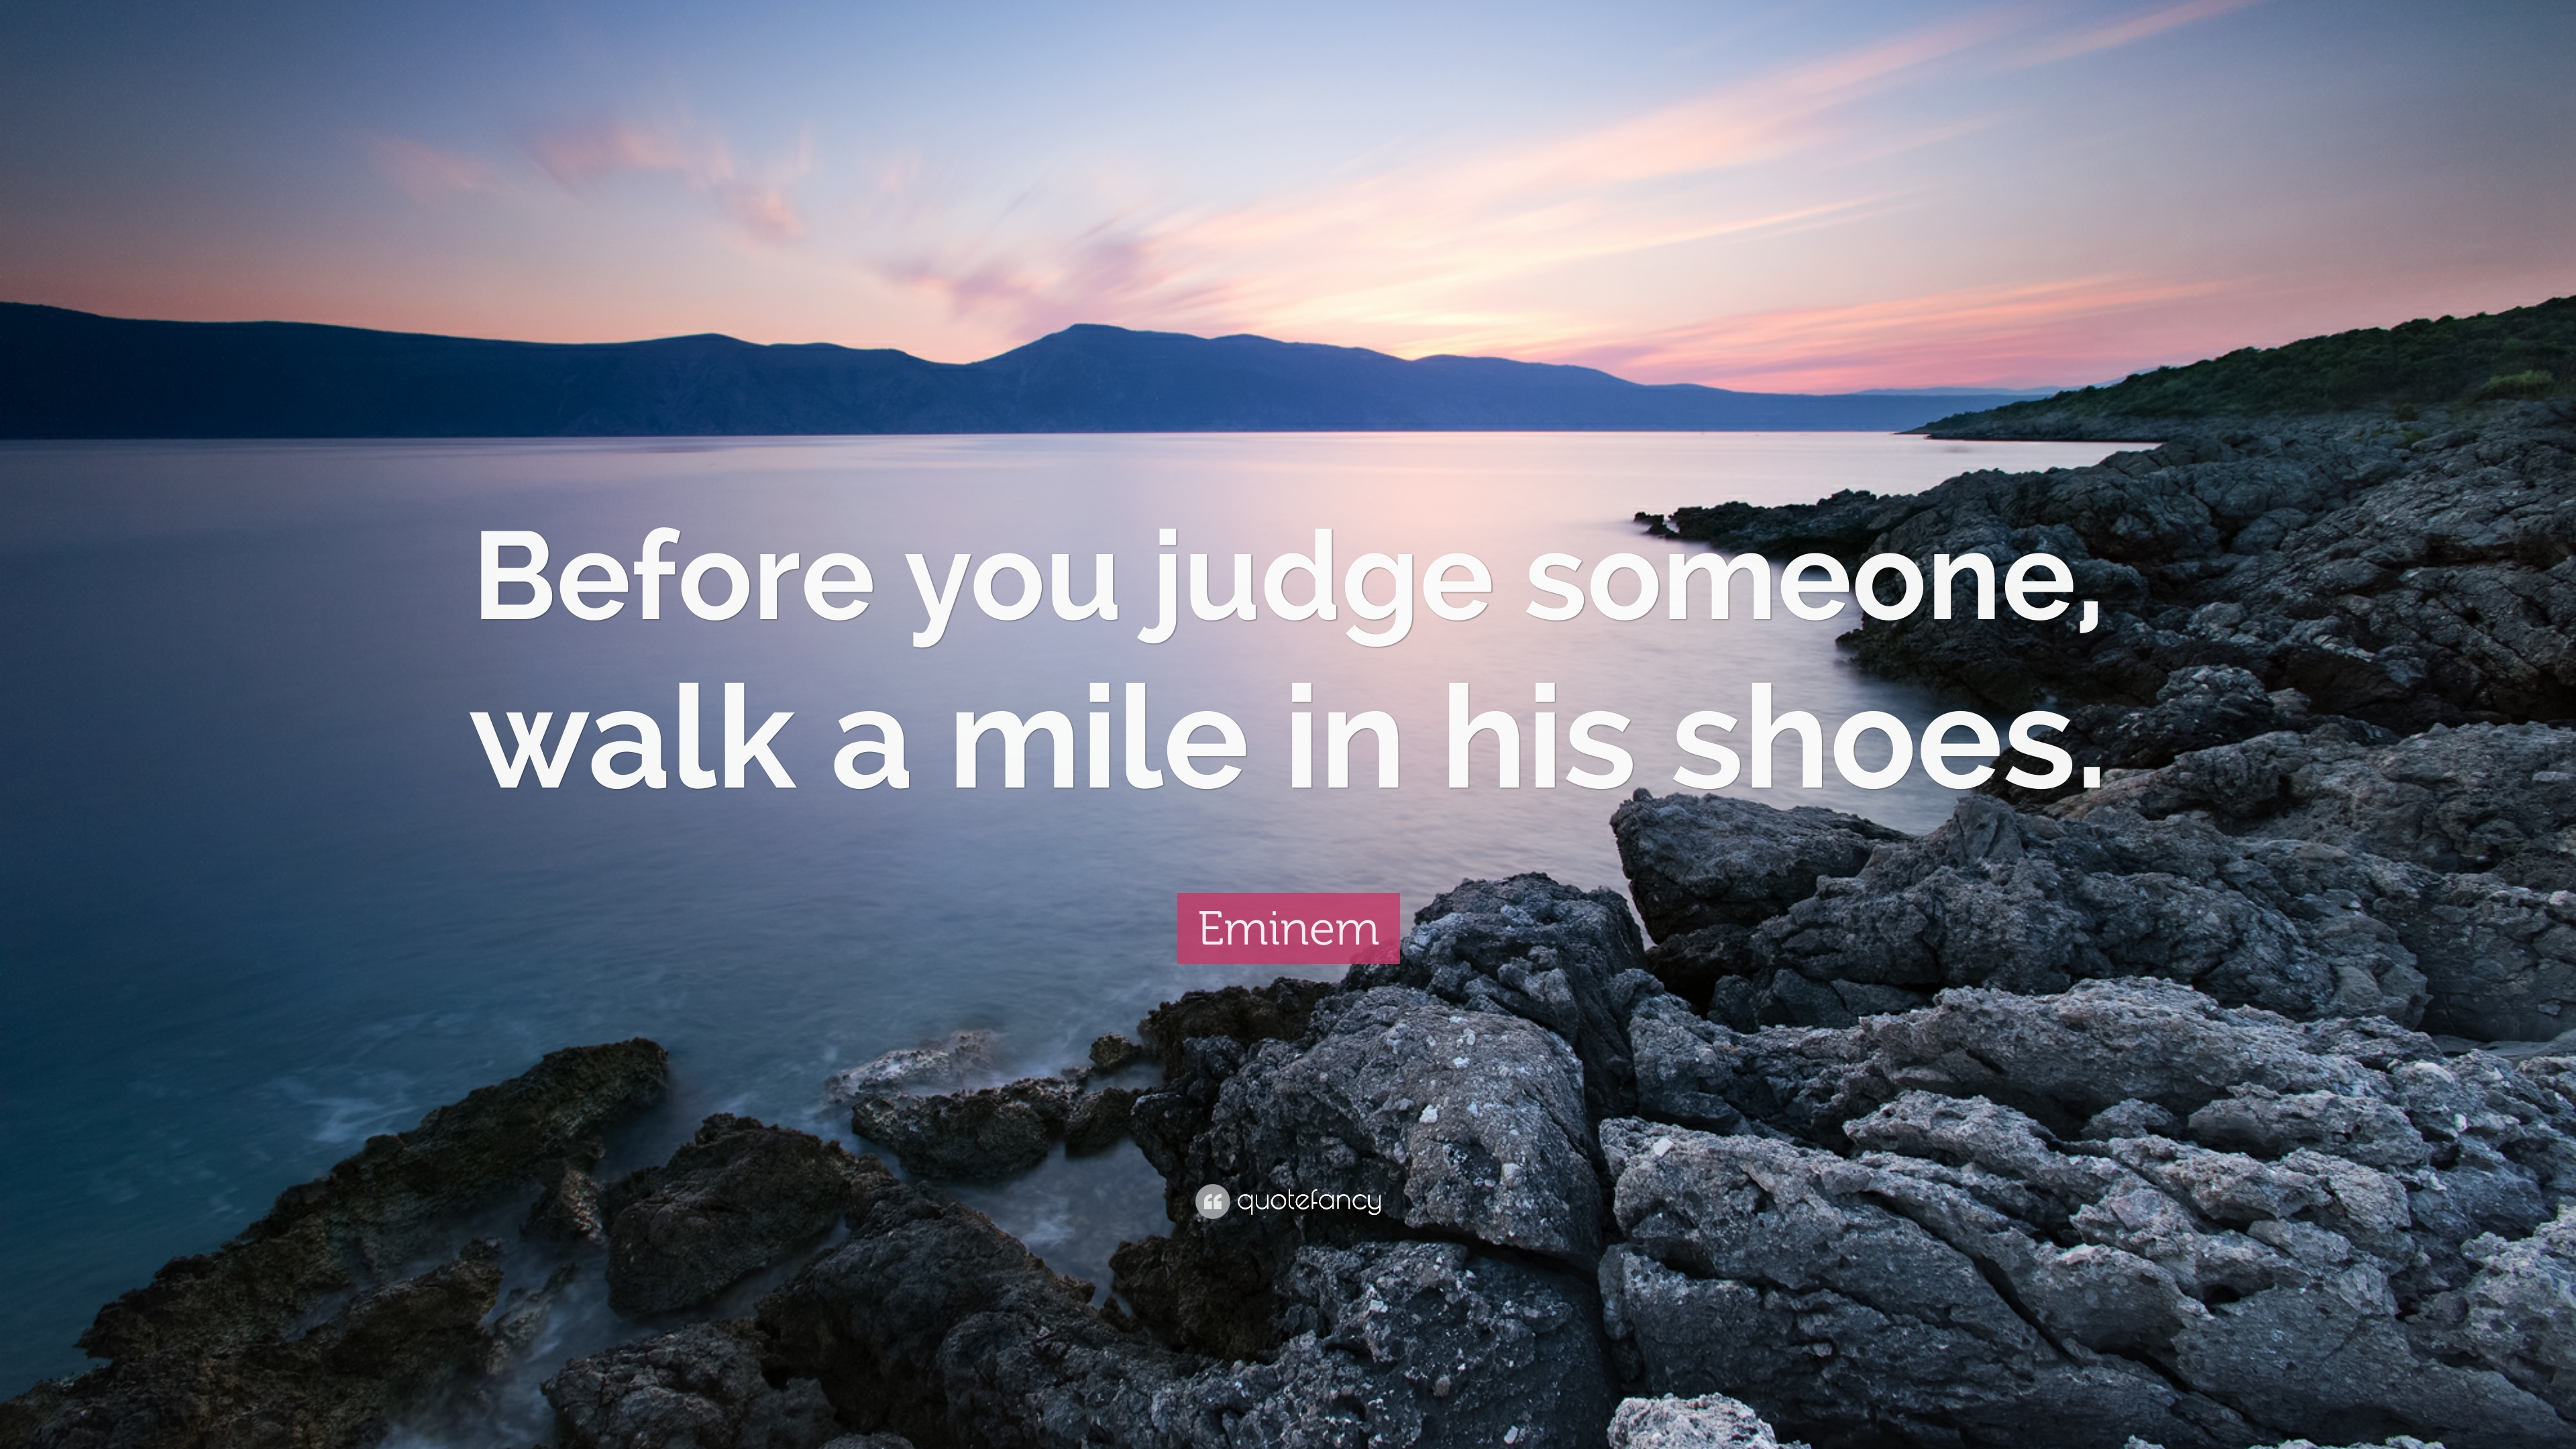 Judging Quotes (40 wallpapers) - Quotefancy